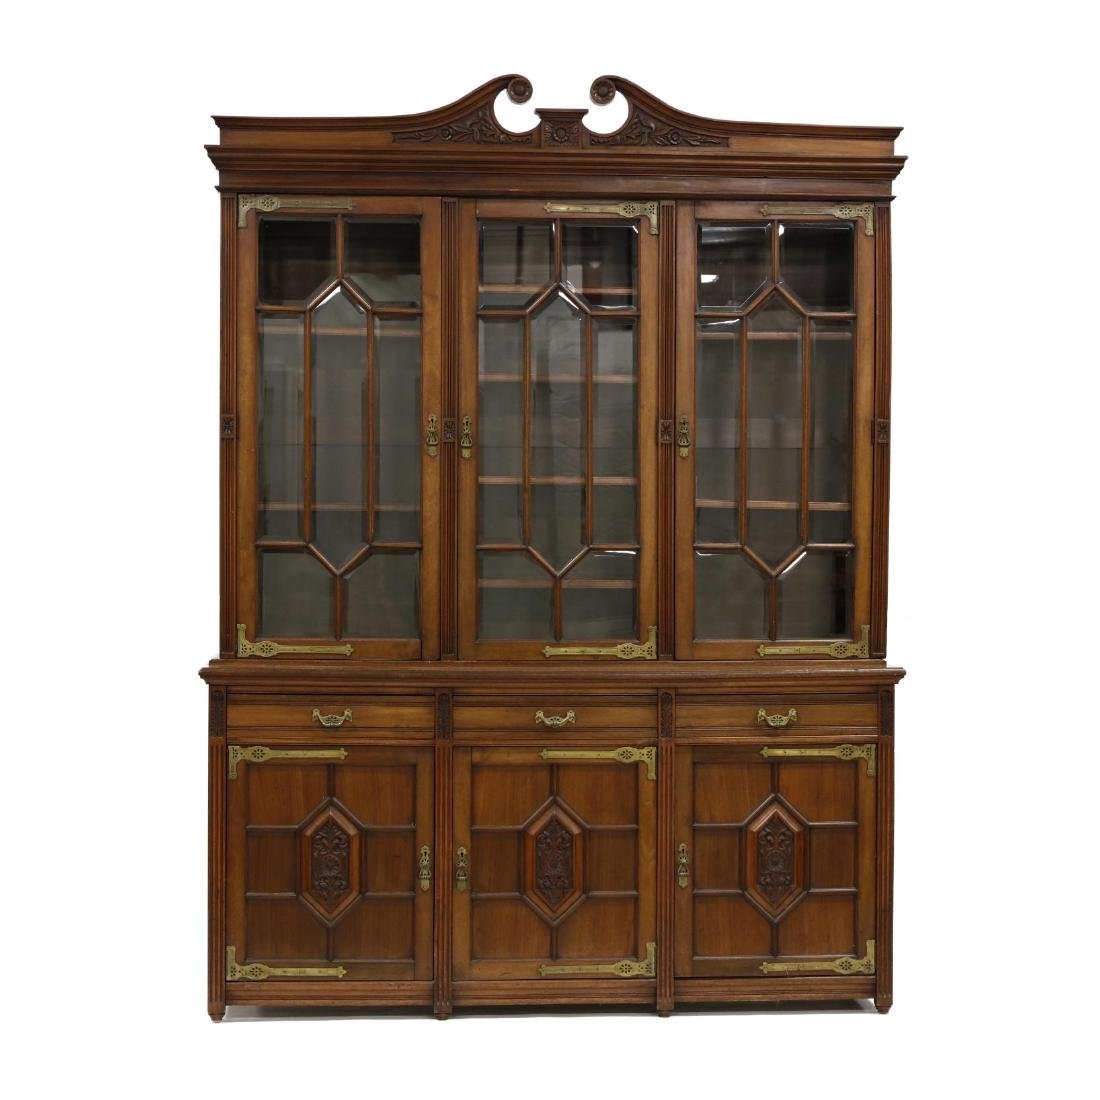 Aesthetic Period Carved Mahogany Bibliothèque